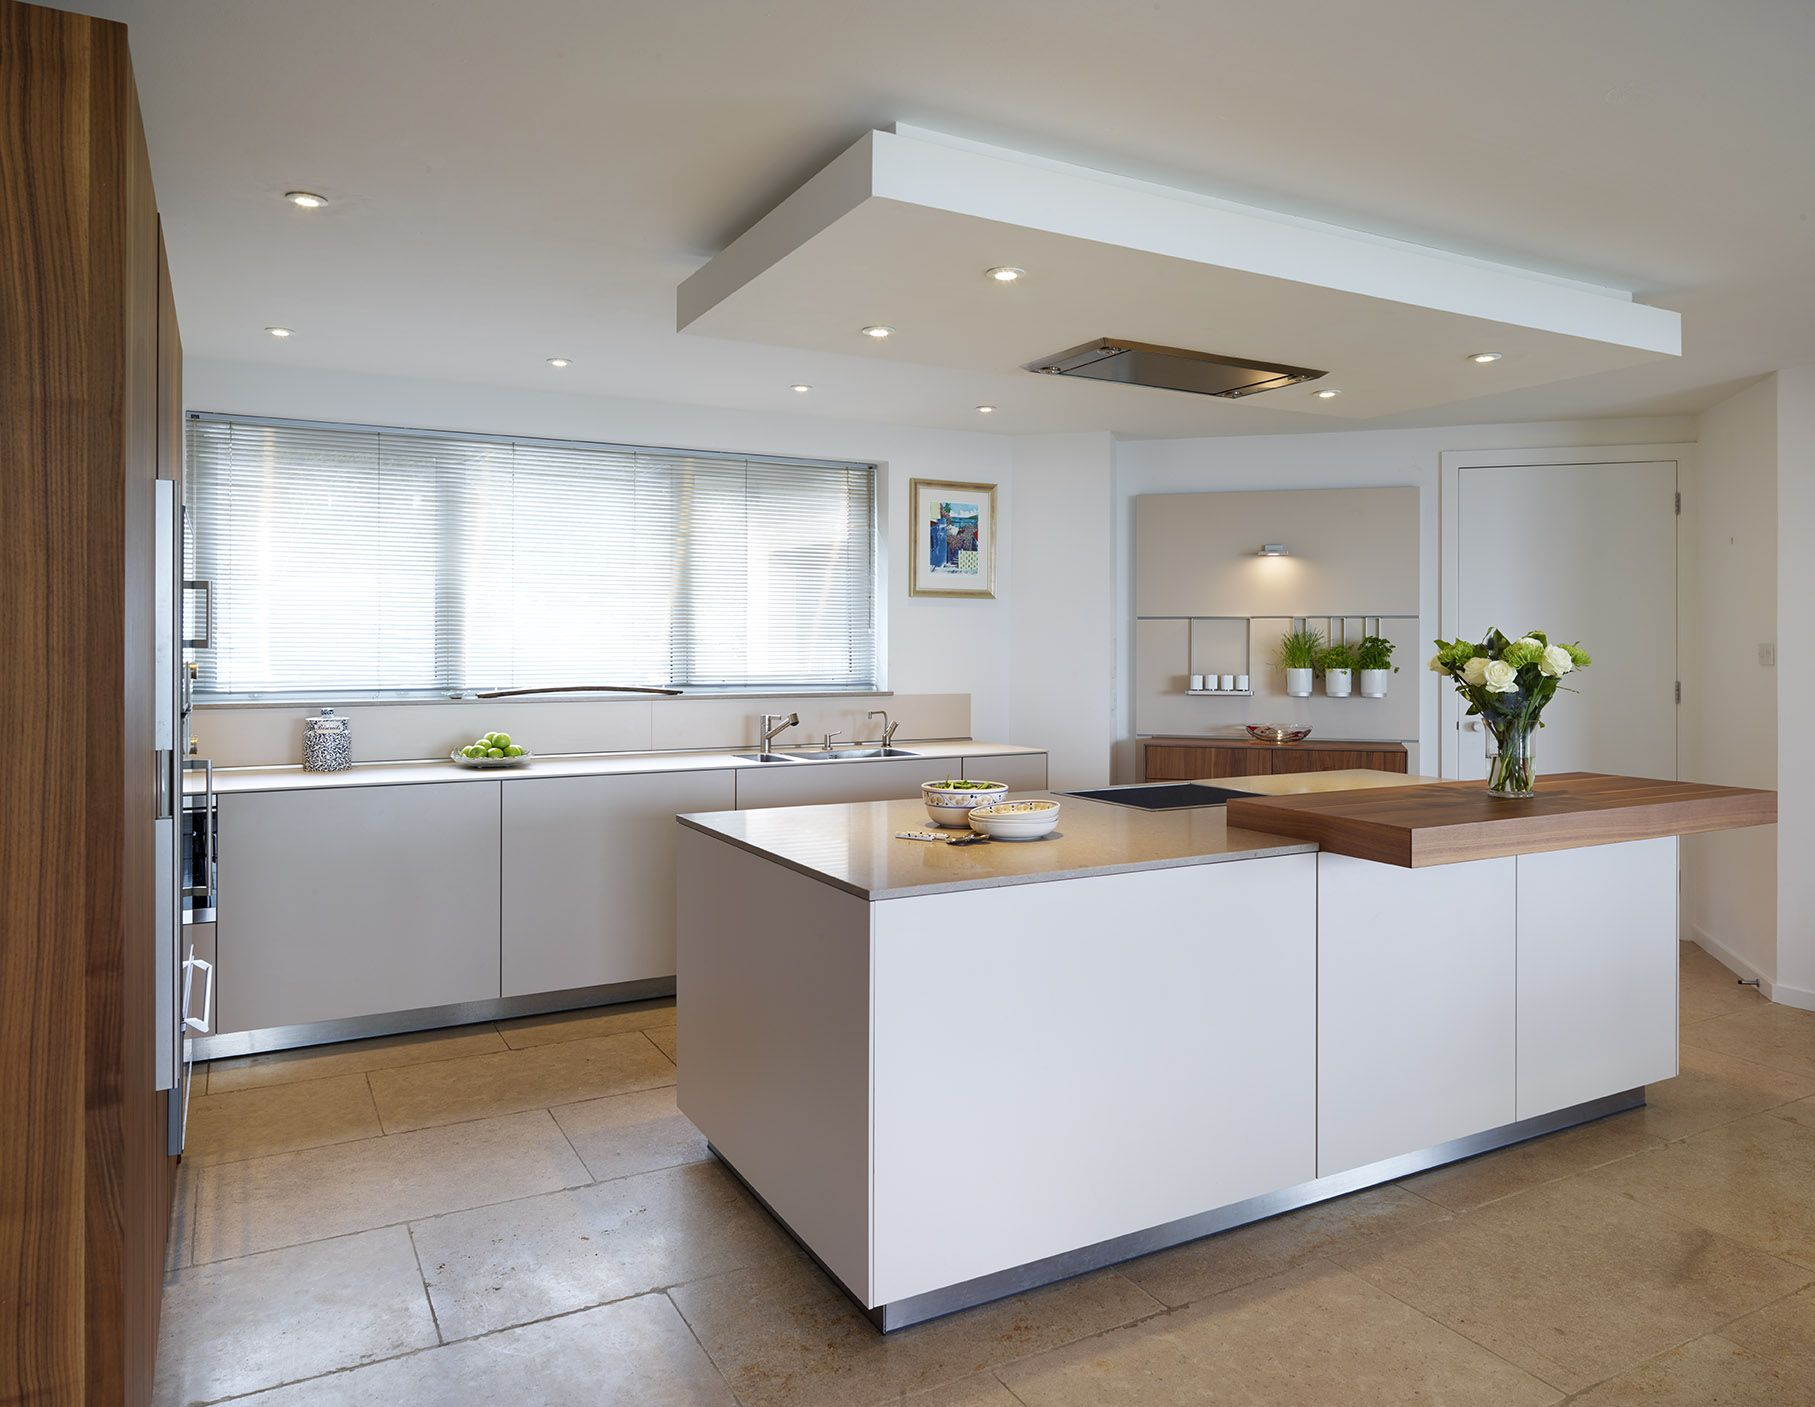 Kitchen Island Extractor Fans the drop ceiling creates a flush fit extractor above the central